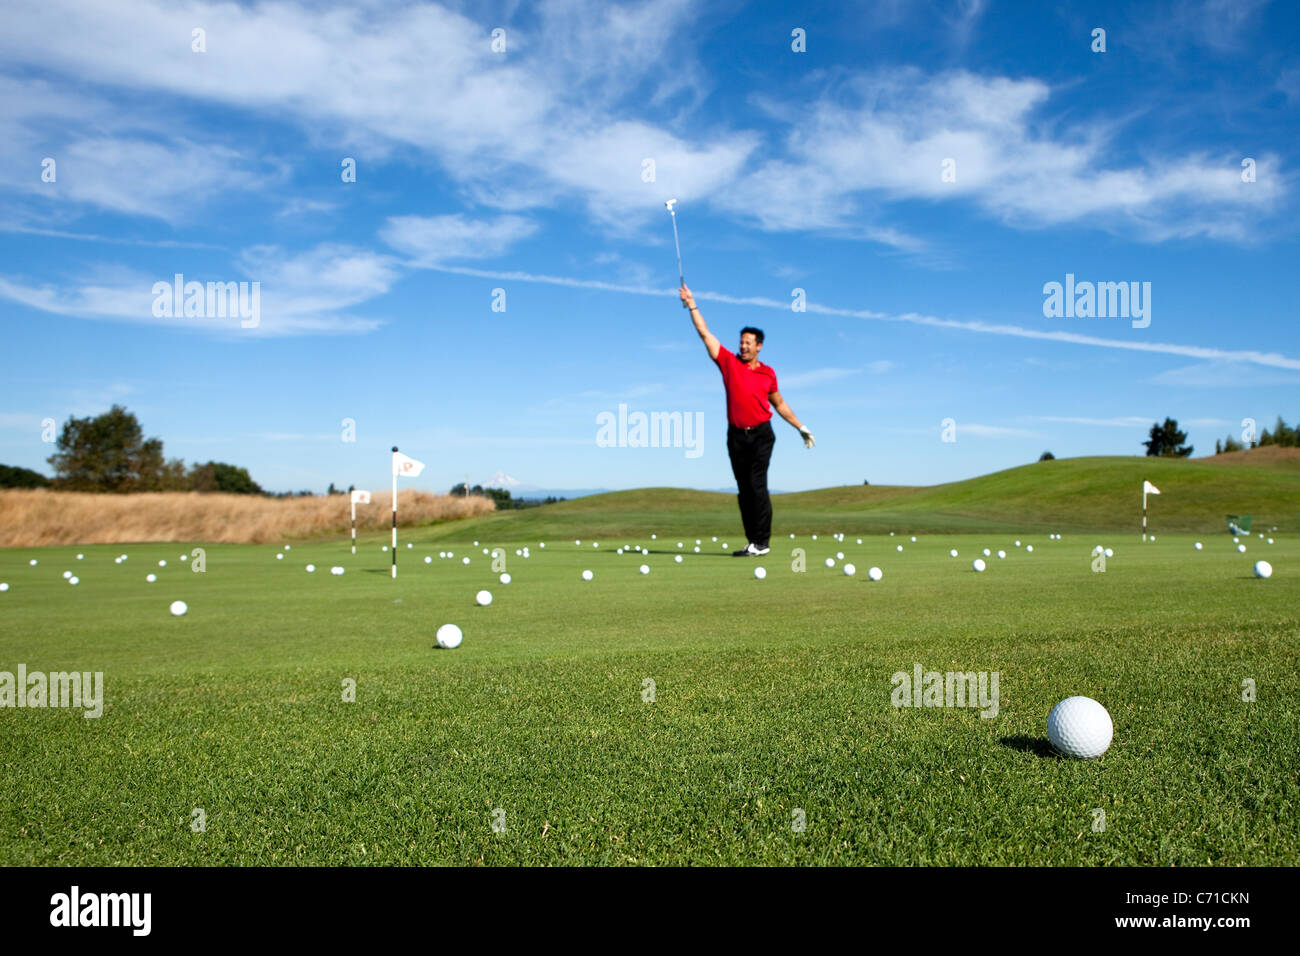 Man excited about making a putt while golfing. - Stock Image